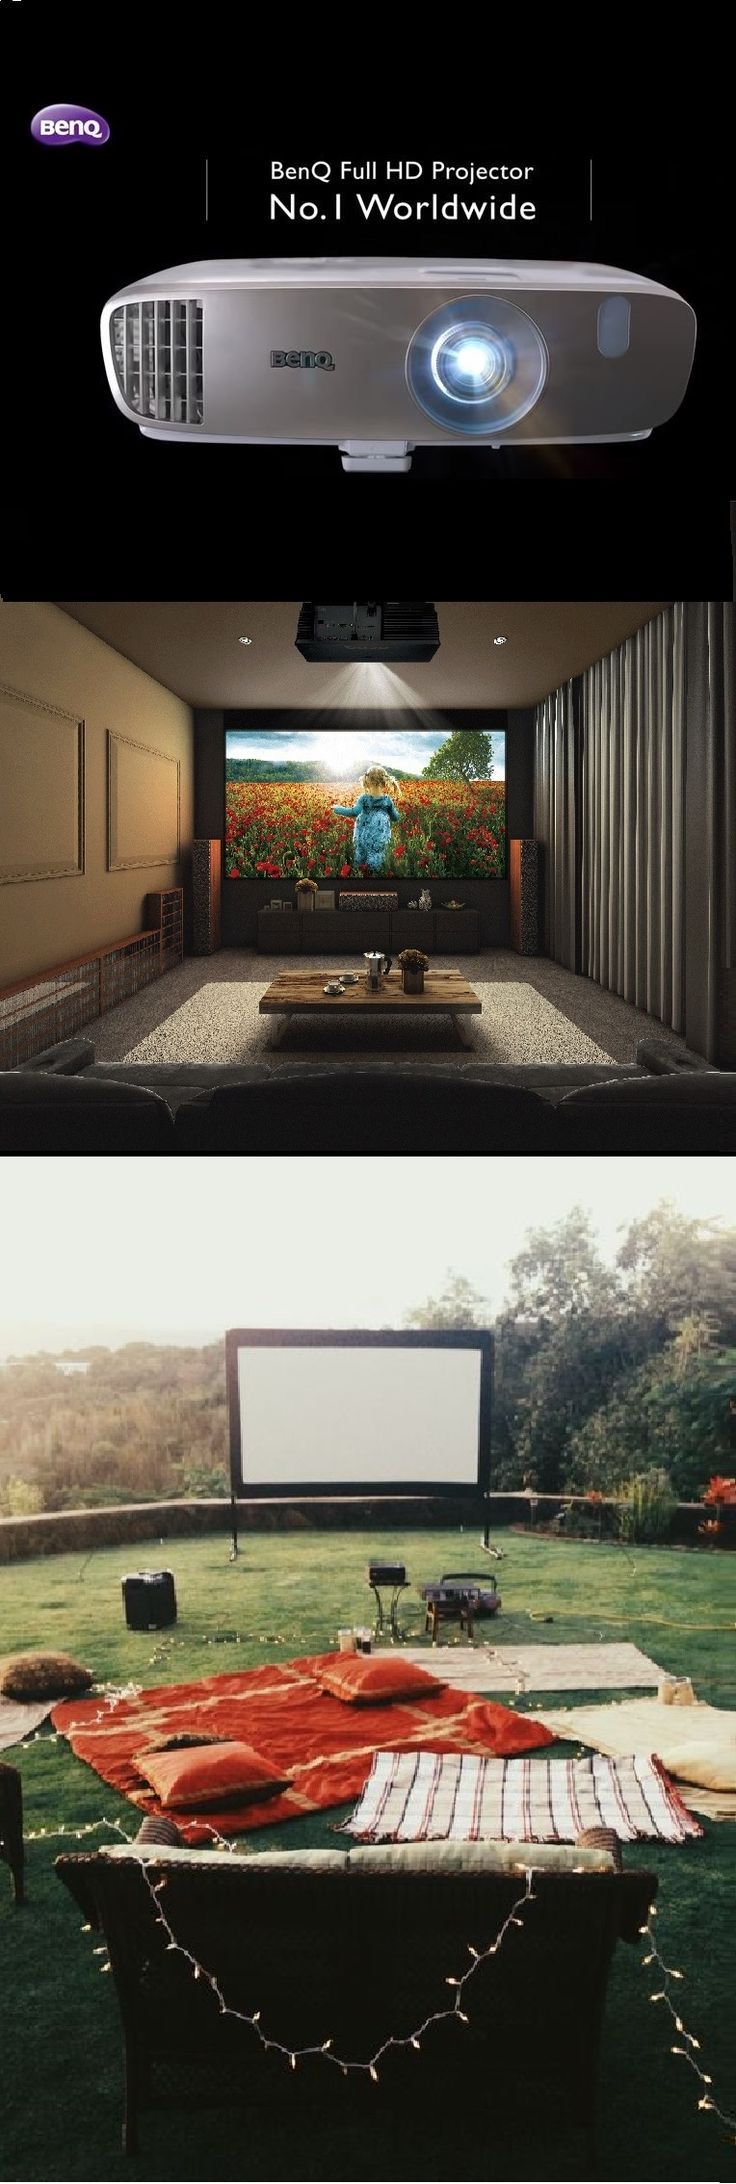 Aside from the Benq projector (w2000) ... l've measured the sizing and have decided to go for an approx. 2.8 metre wide outdoor movie screen, which should be a nice, balanced size for my garden and surrounding space.